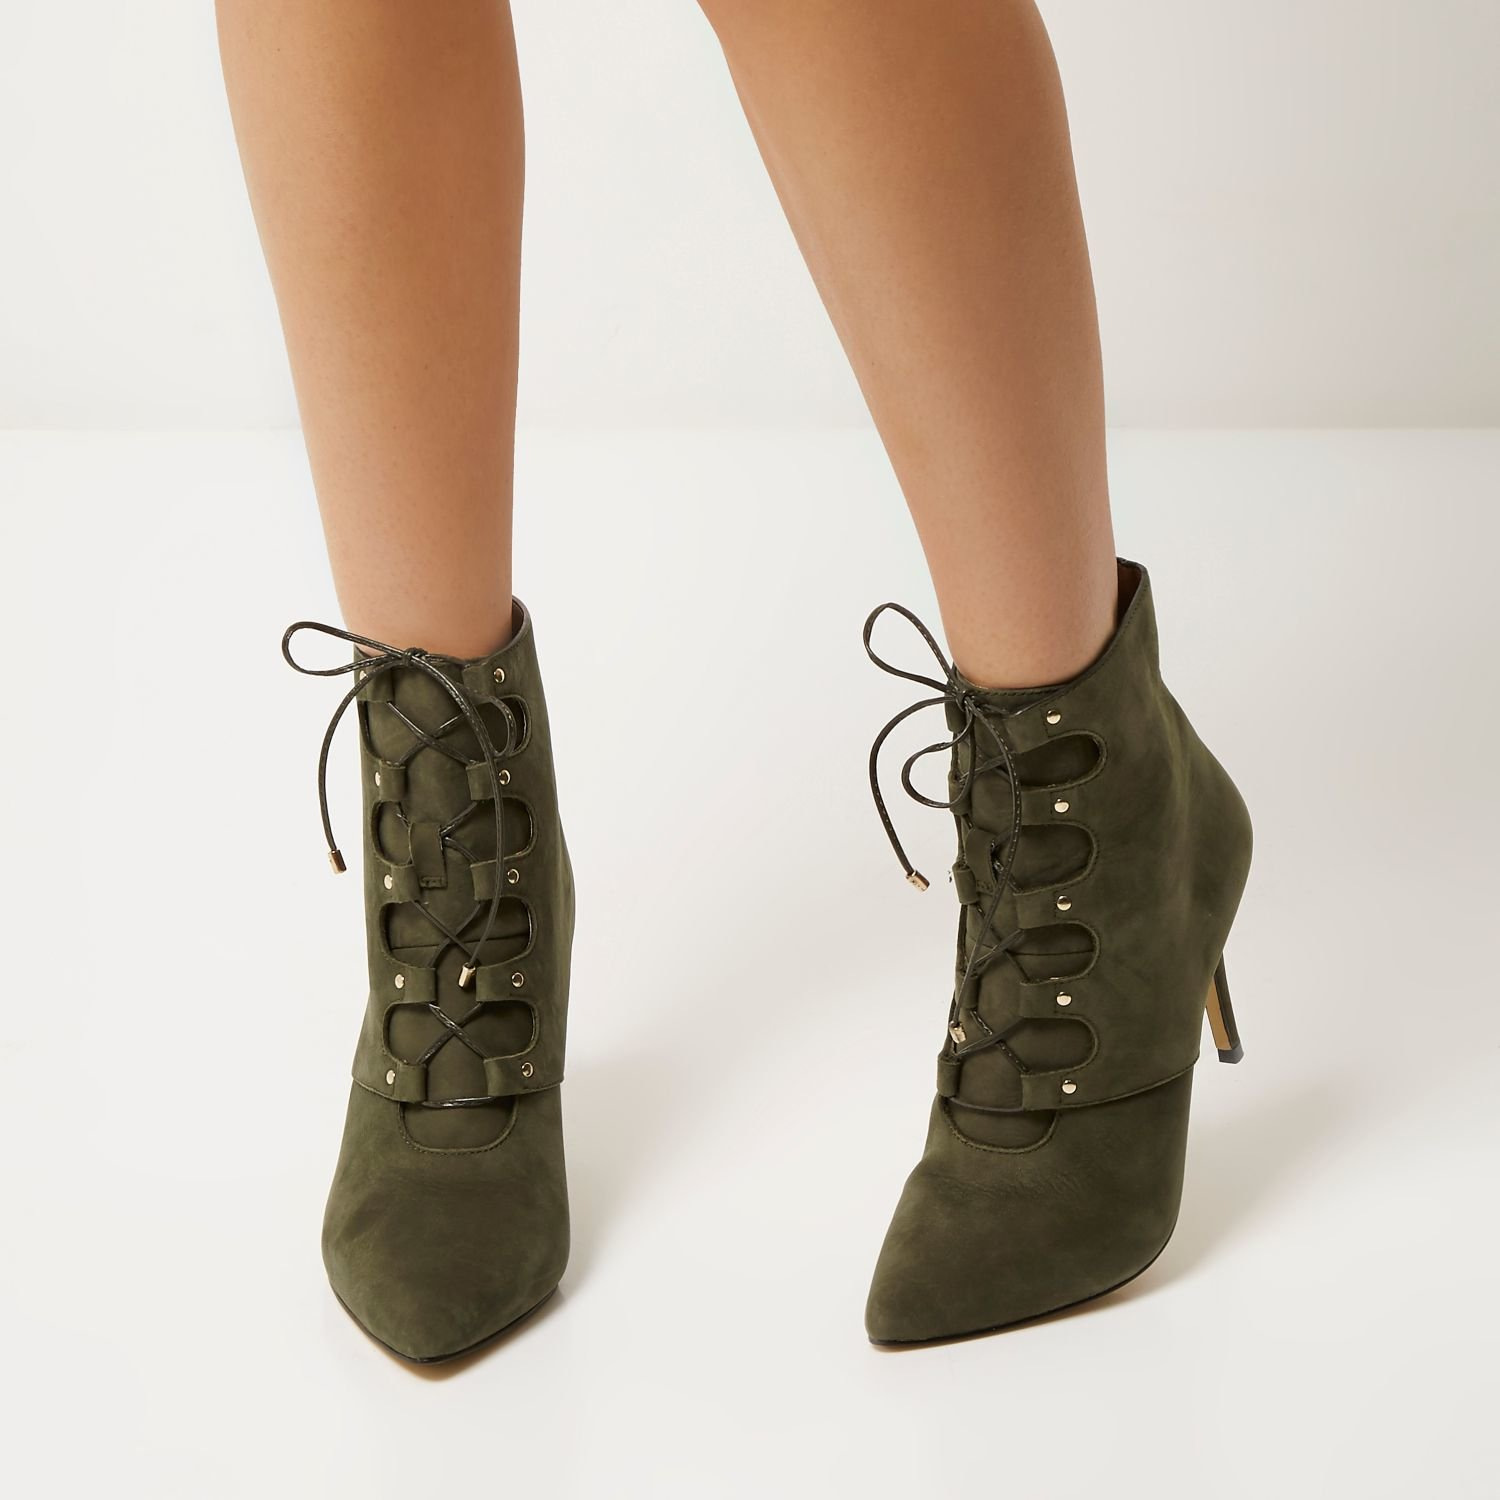 River Island Khaki Leather Lace Up Pointed Heeled Boots In